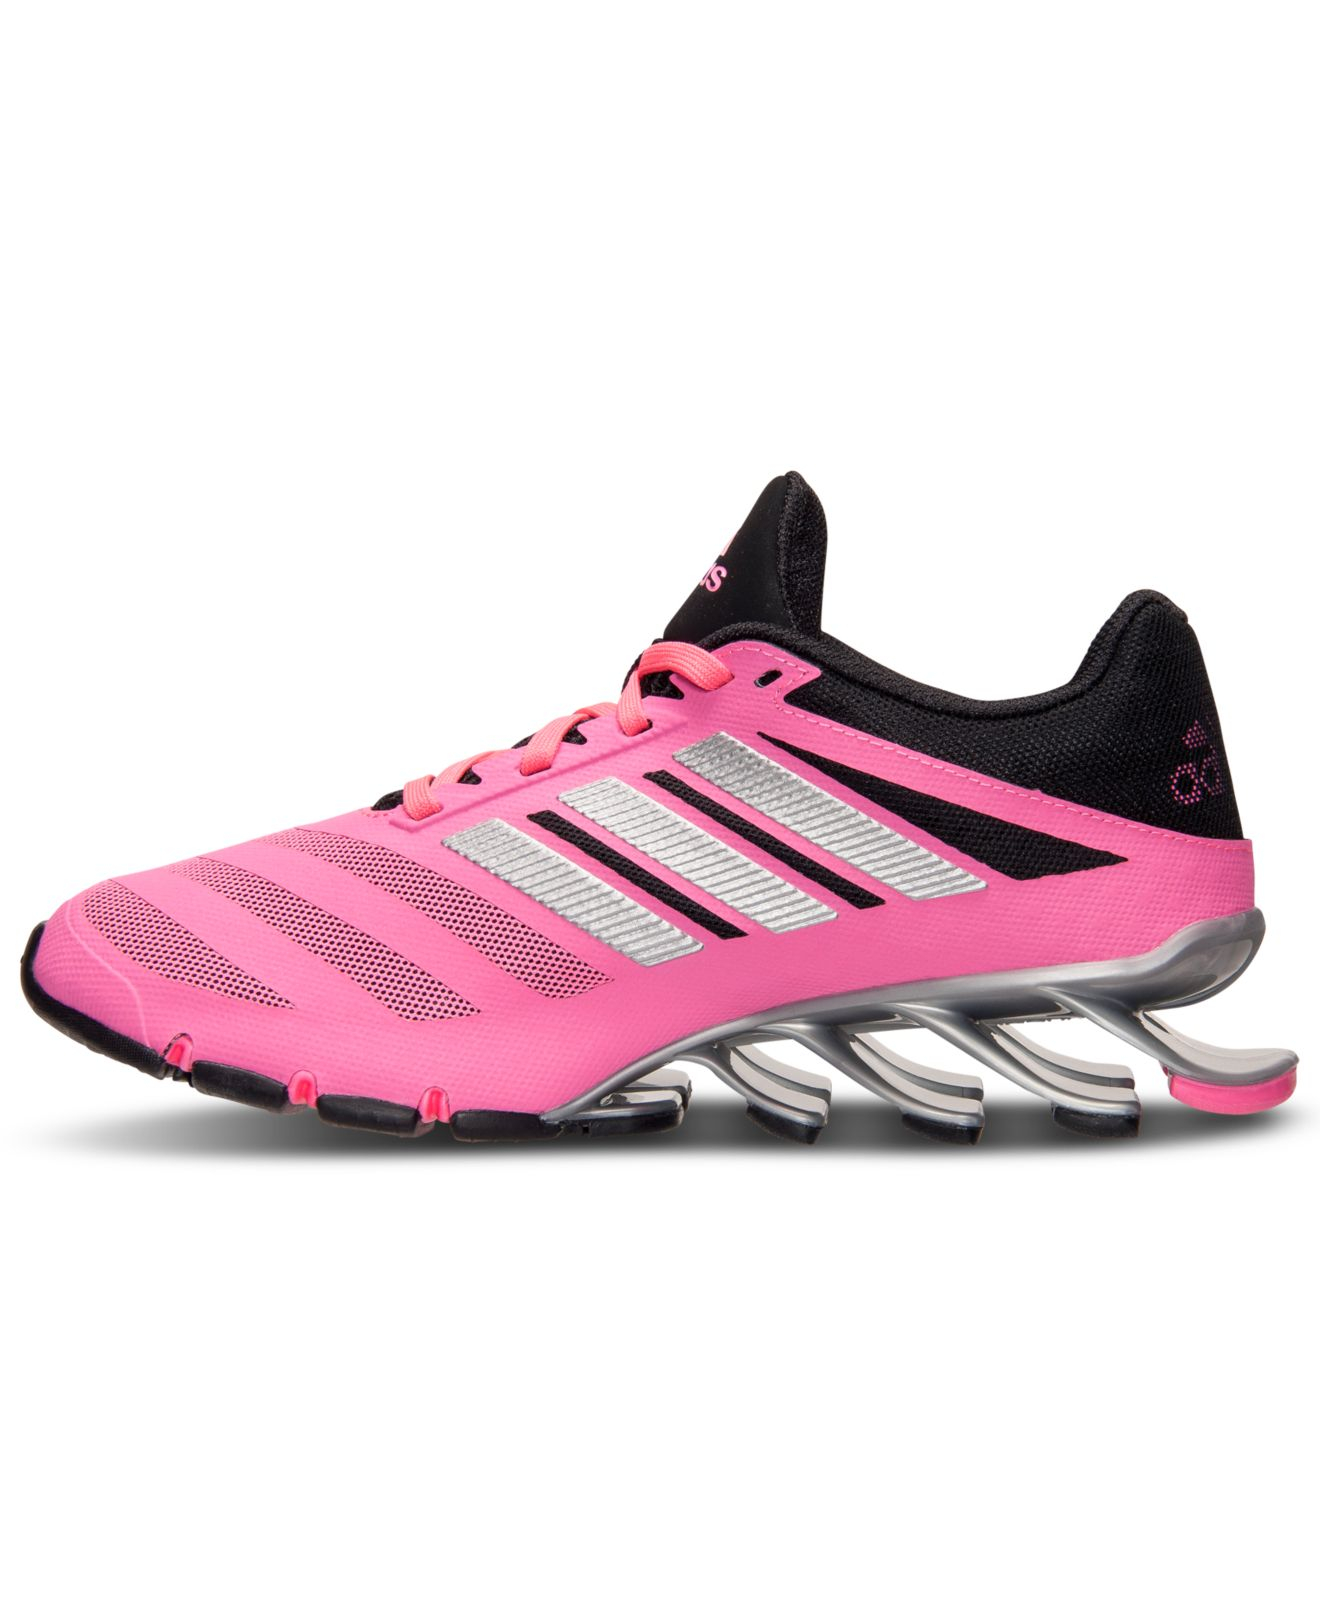 the latest d3206 dc485 ... adidas springblade ignite pink silver .